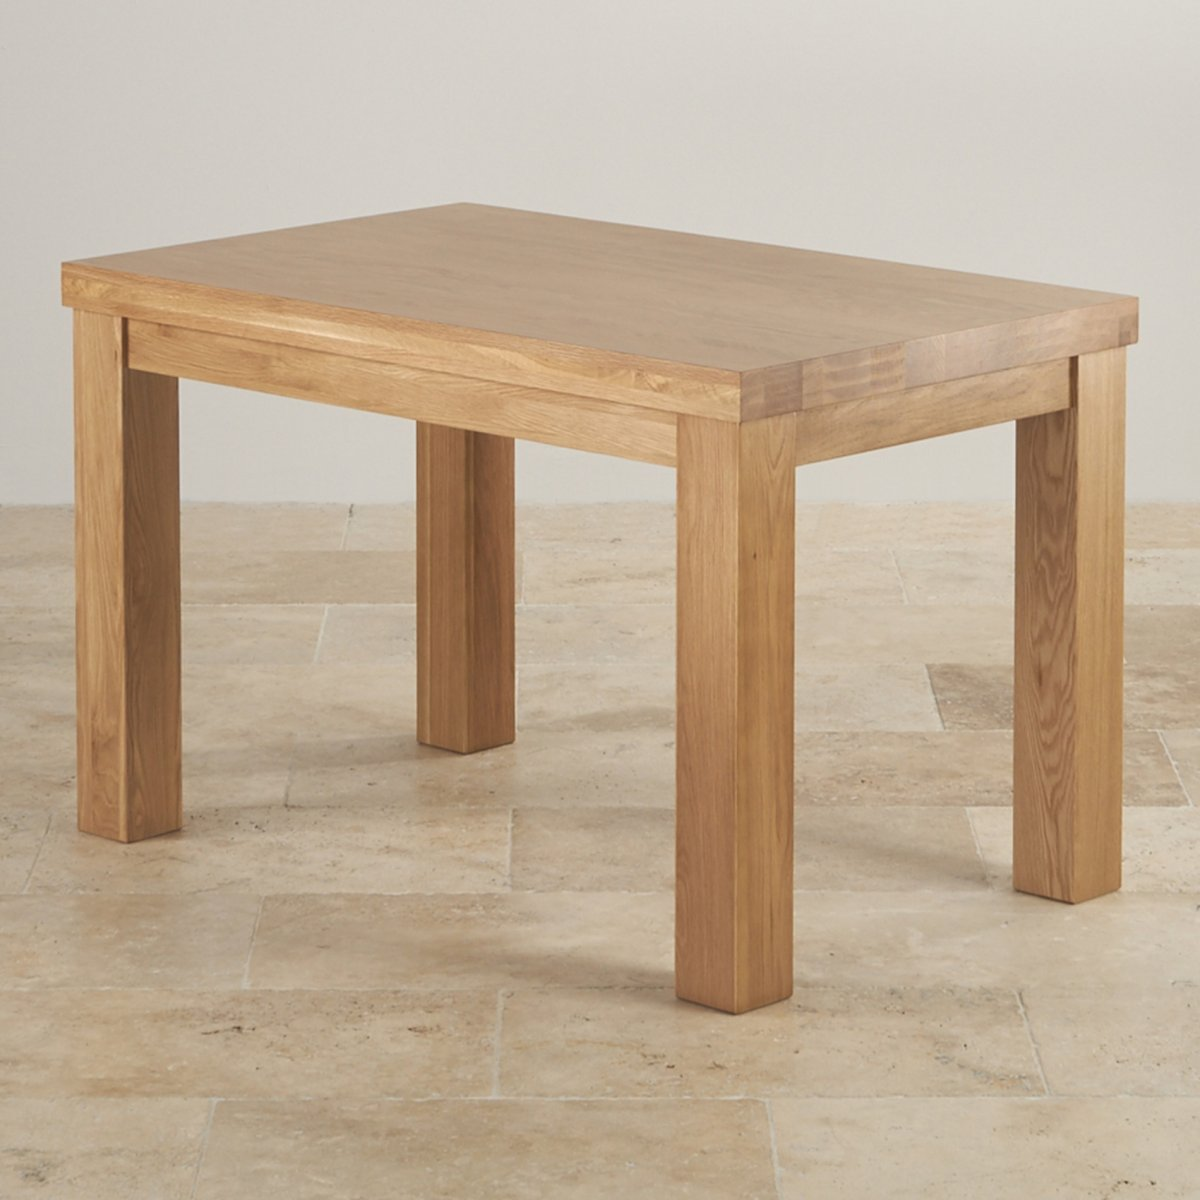 Contemporary Chunky Dining Table in Natural Oak : contemporary chunky 4ft x 2ft 6 natural solid oak dining table 56fbbd073473ee4de6fb5c1767af00c2d01aa5686d72e from www.oakfurnitureland.co.uk size 1200 x 1200 jpeg 128kB